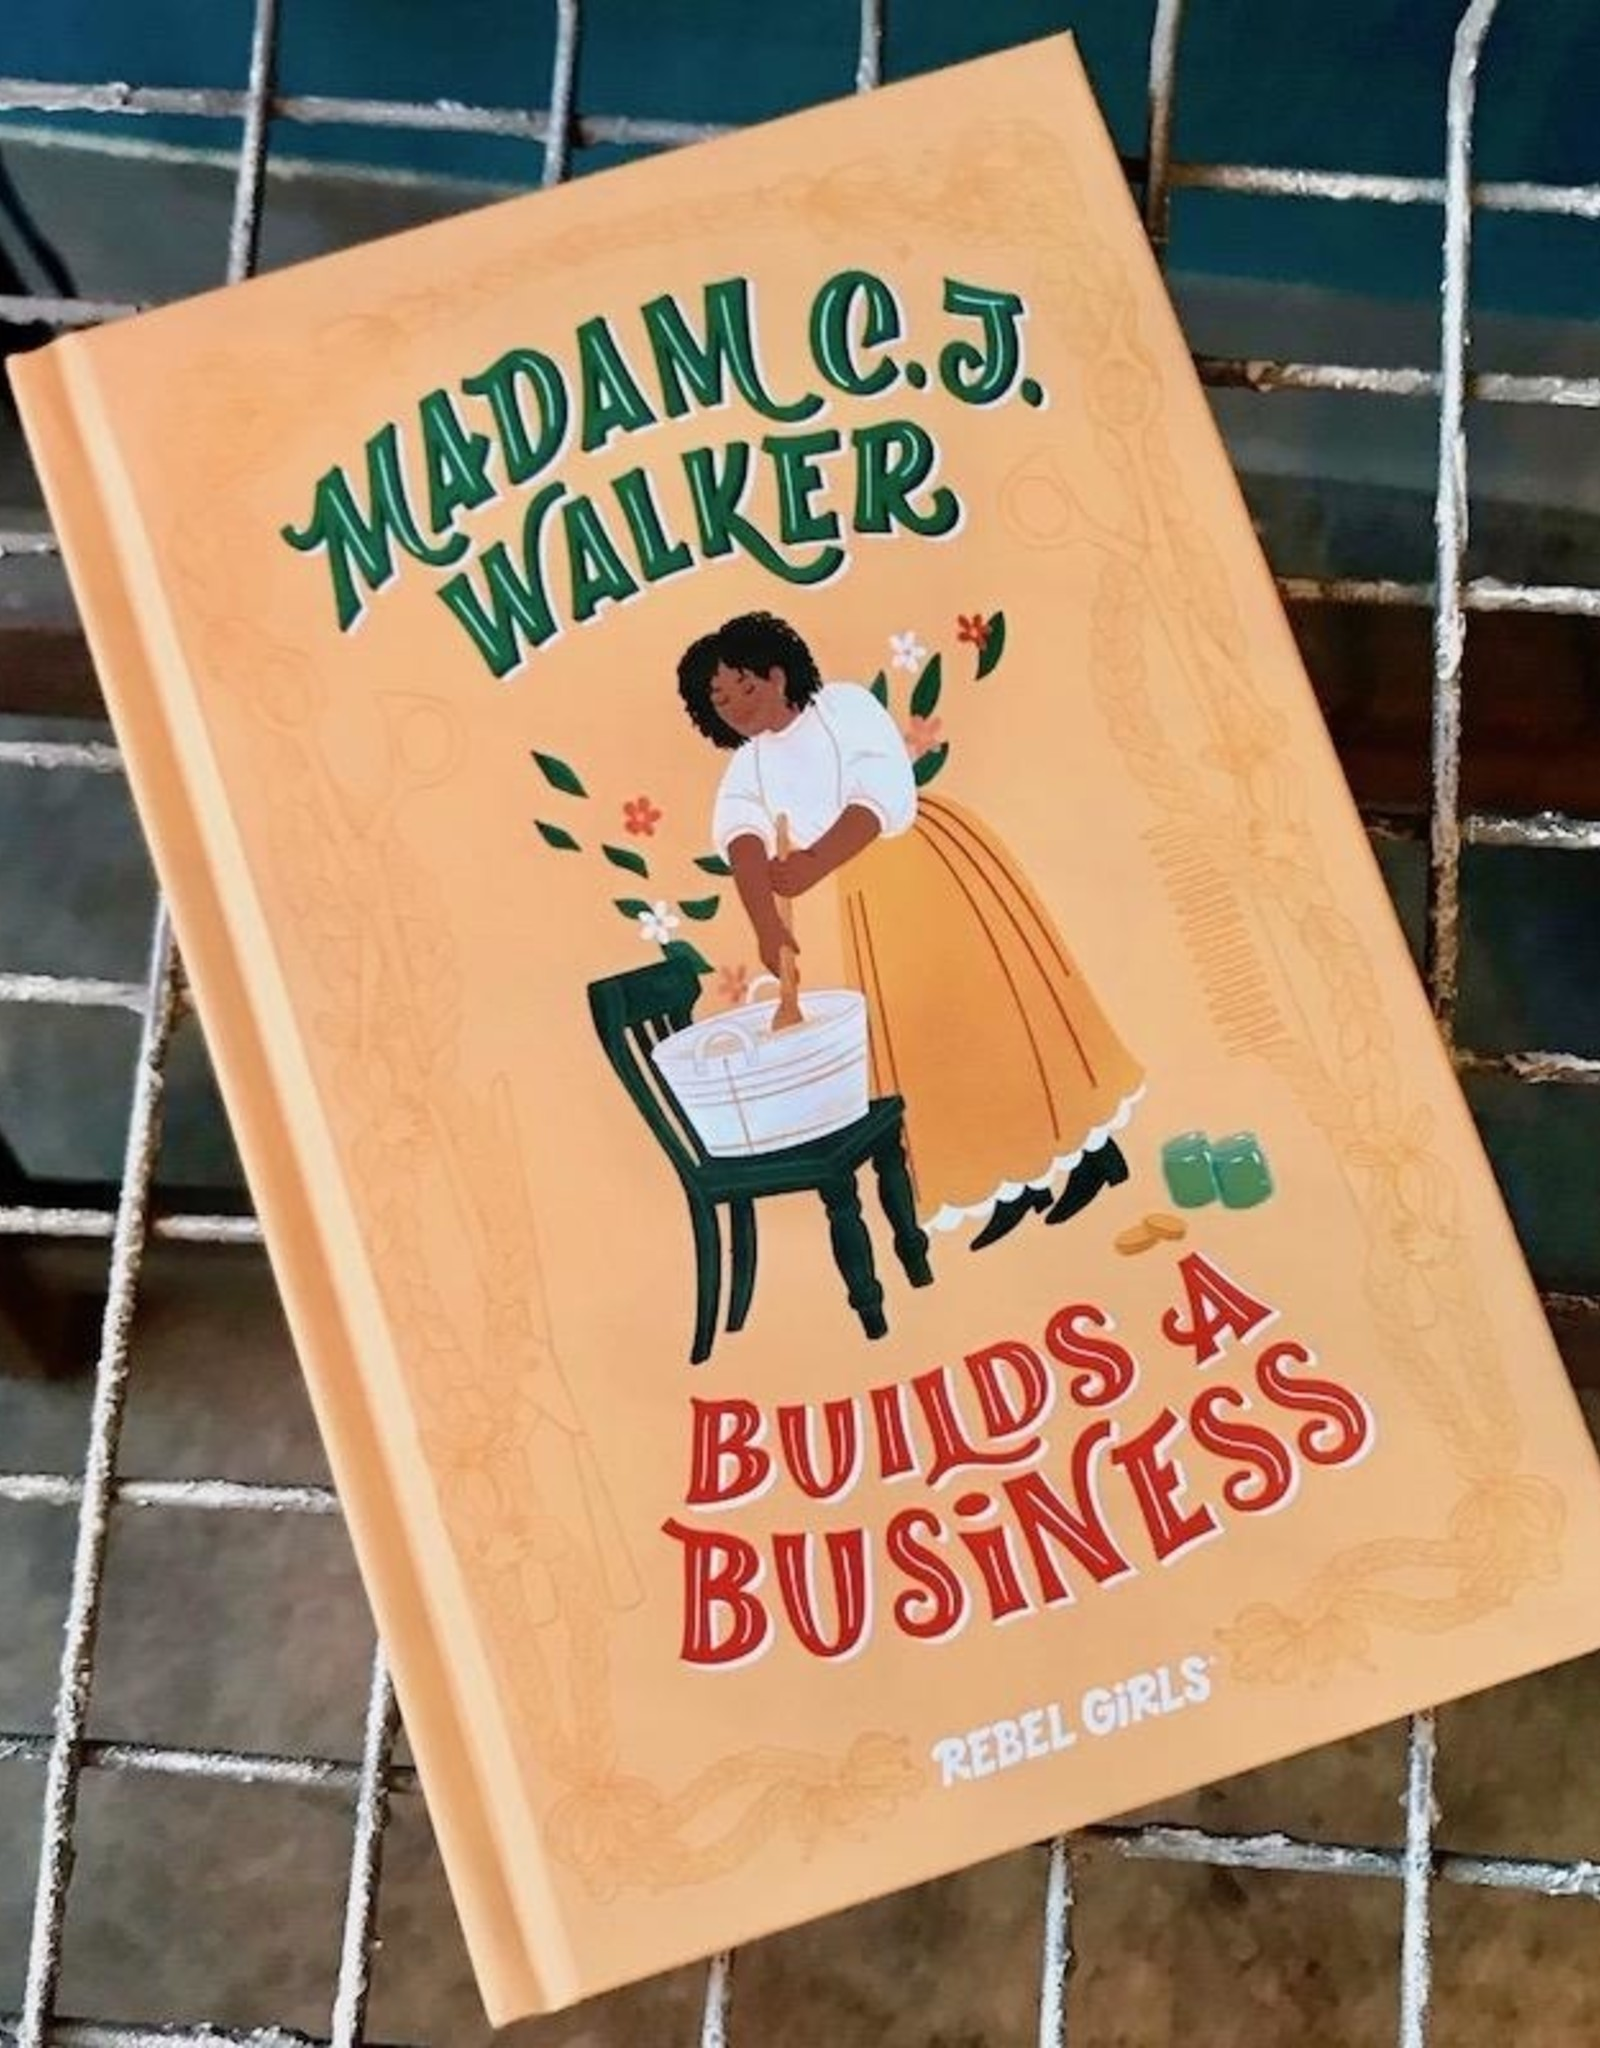 Madam C.J. Walker Builds a Business